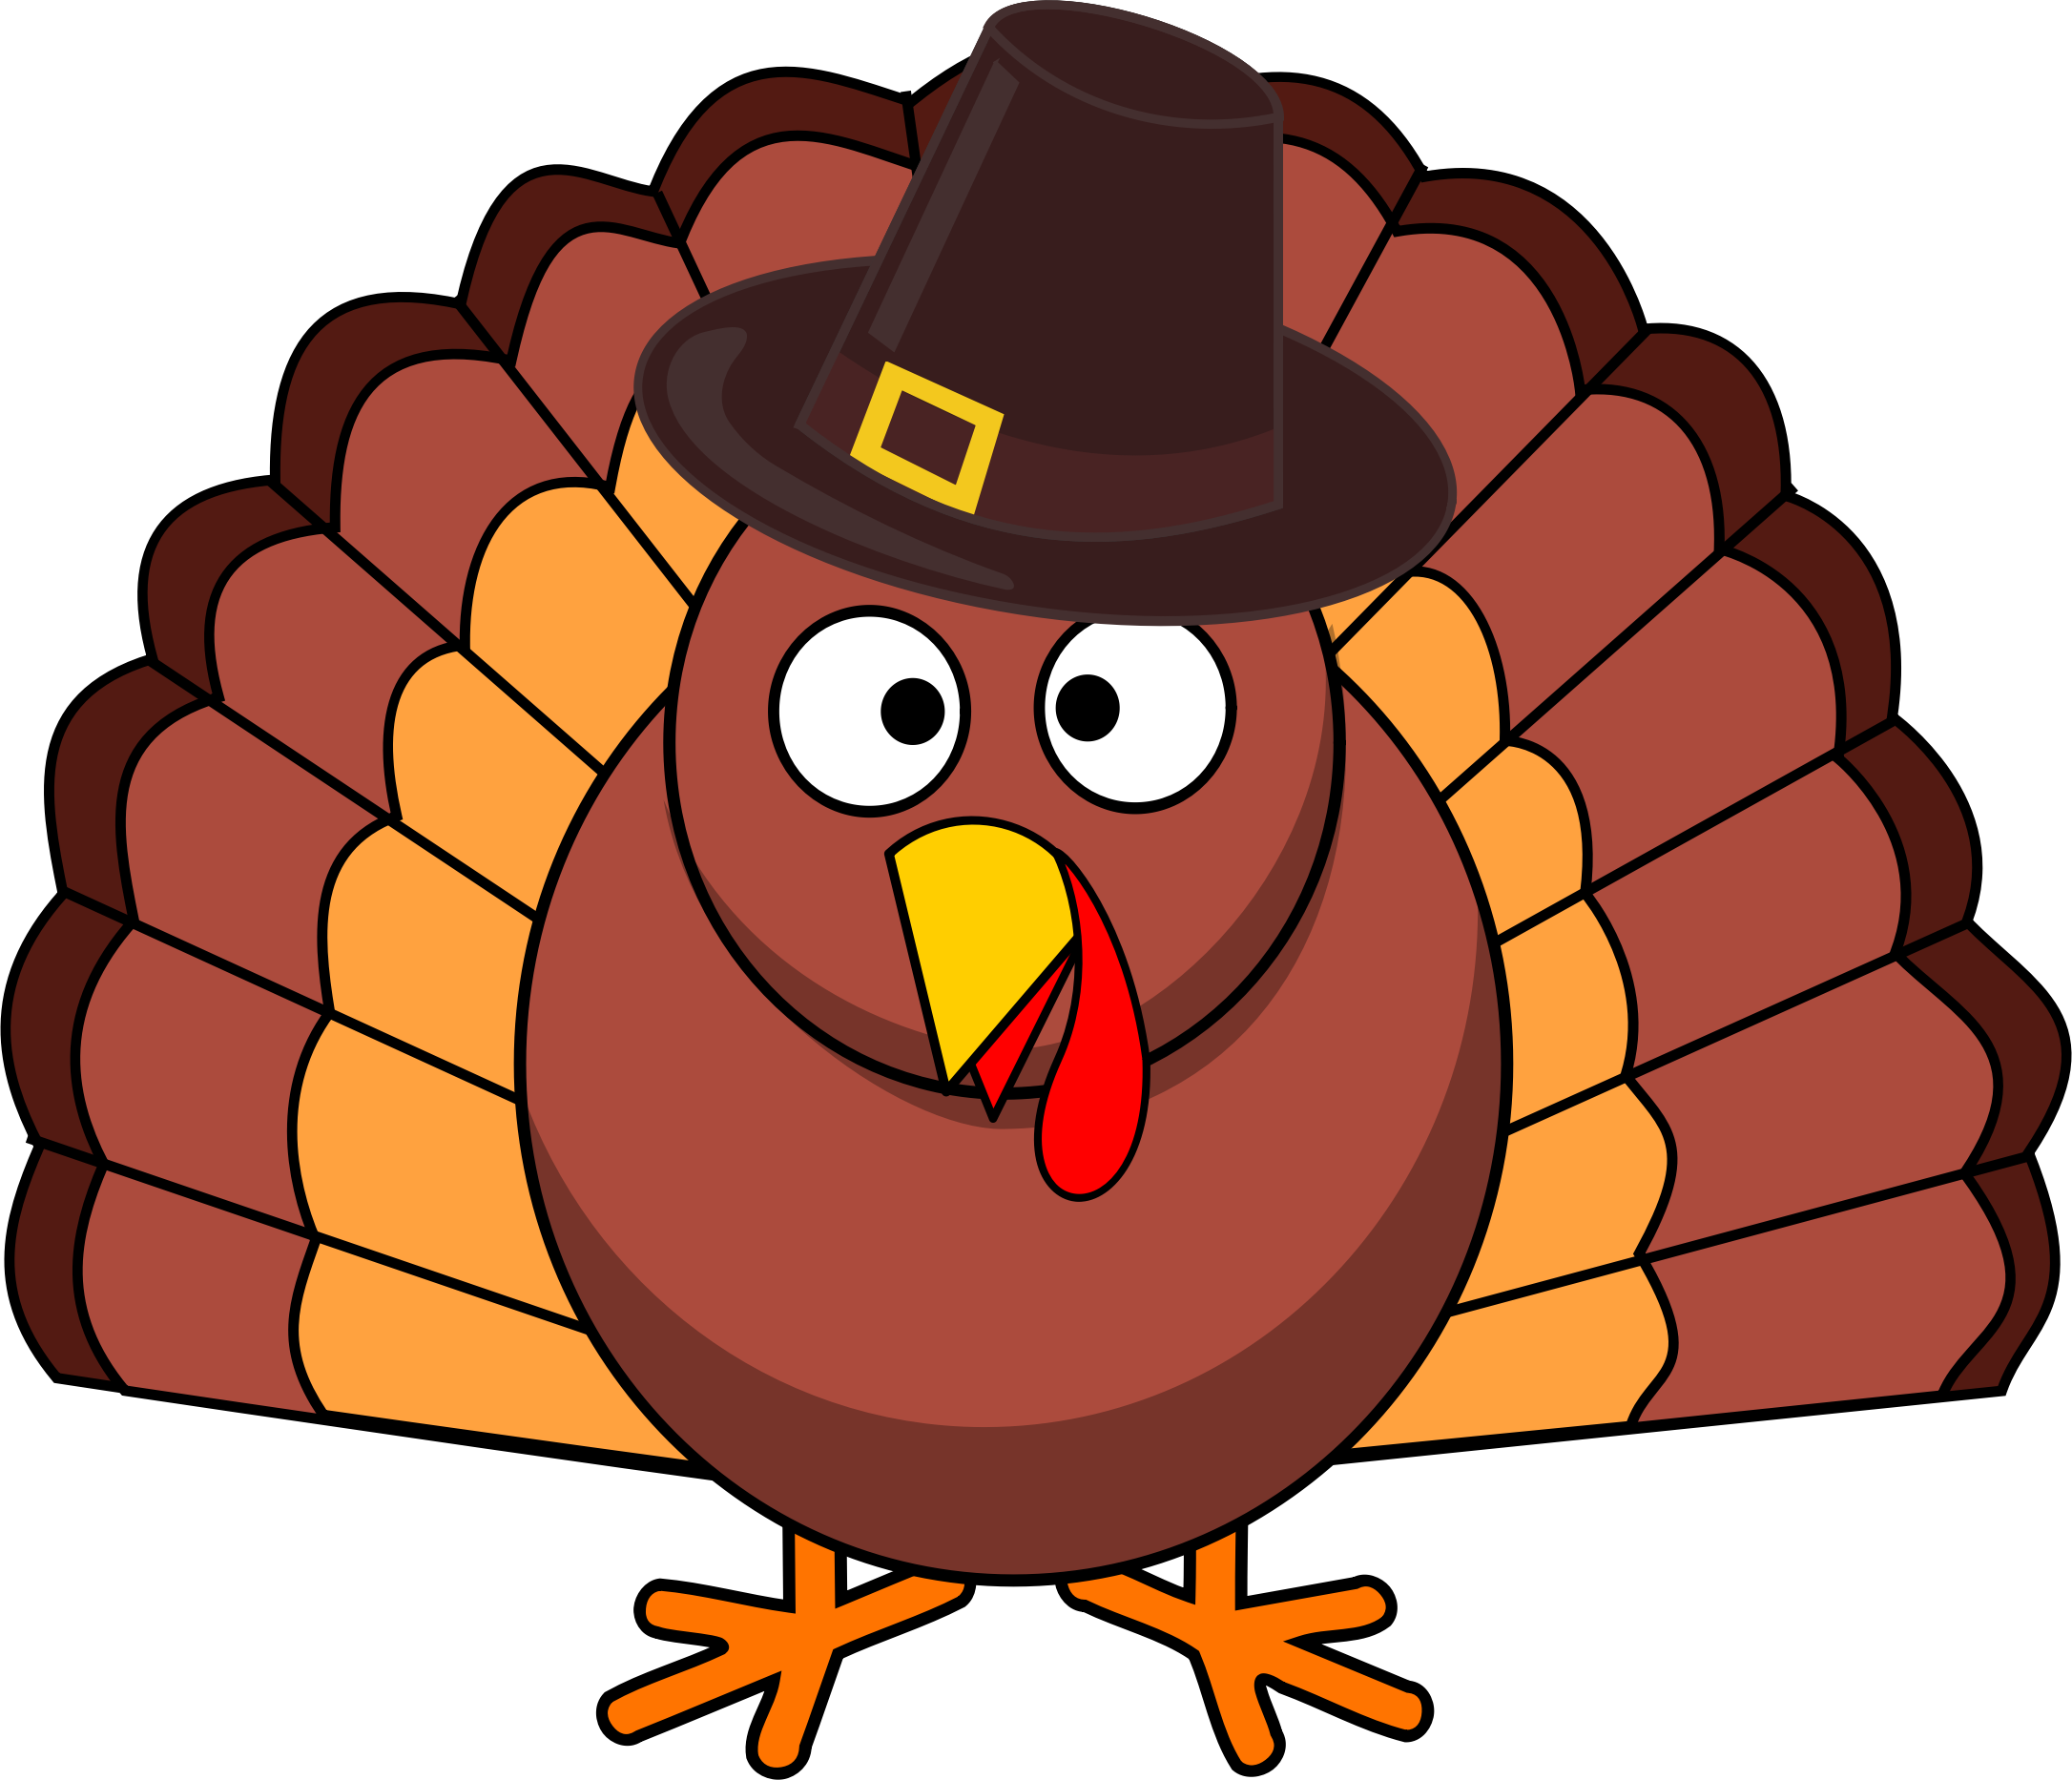 Cute turkey pictures clipart banner library stock Free No Turkey Cliparts, Download Free Clip Art, Free Clip ... banner library stock